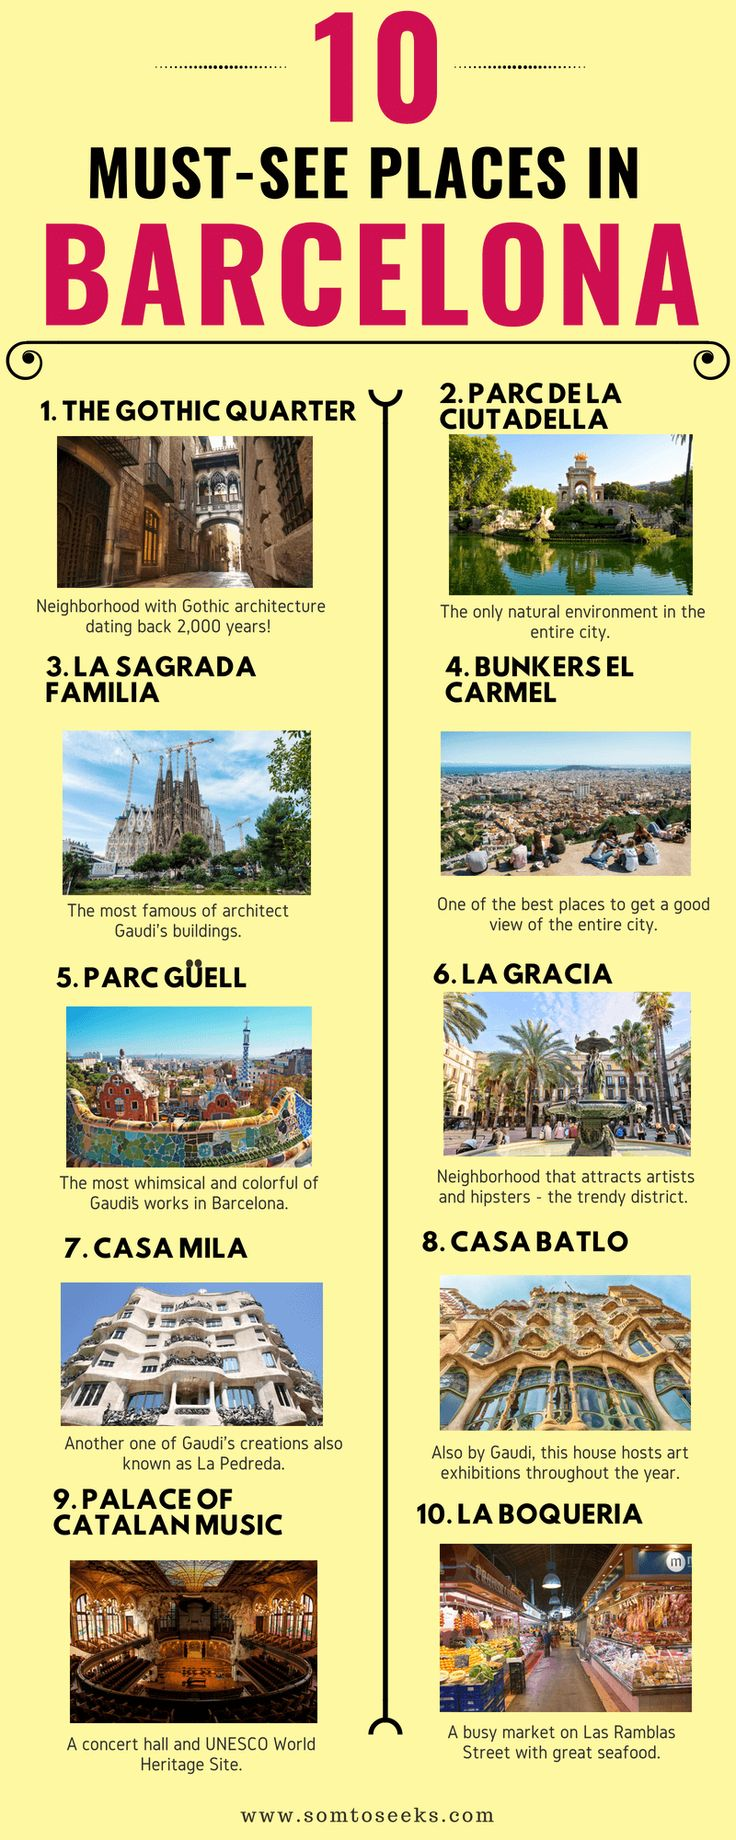 Barcelona Spain Travel Tips I Here are 10 of the best things to do in Barcelona….